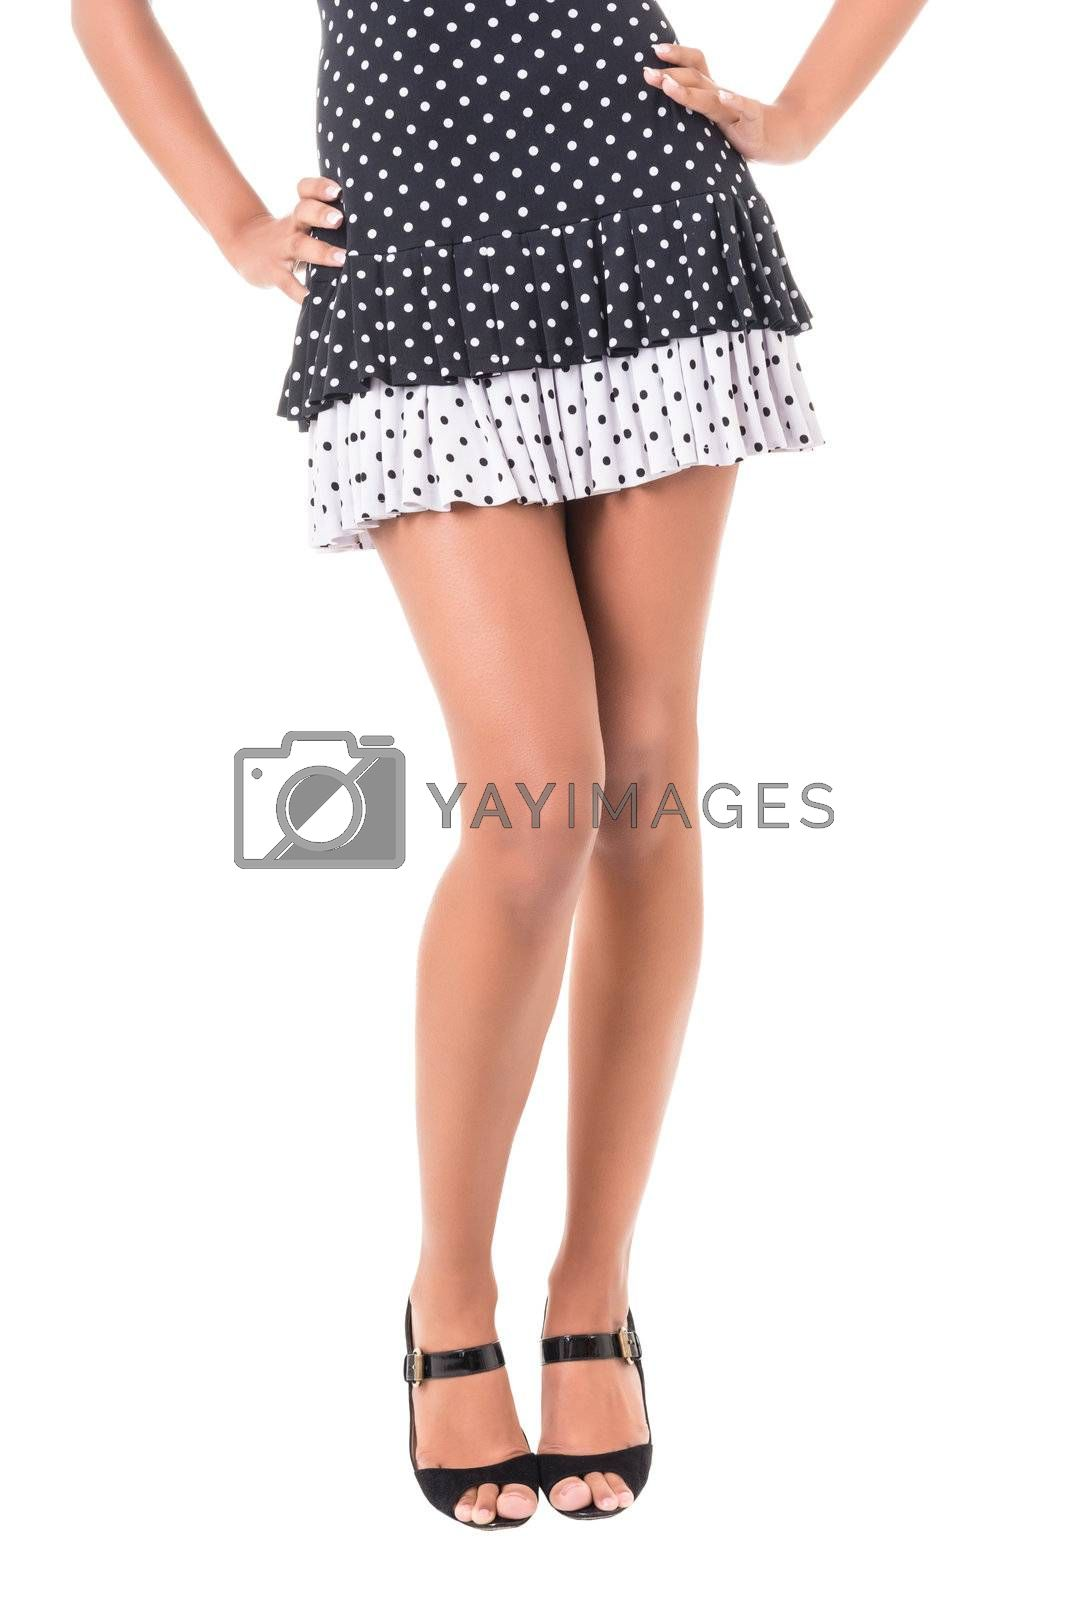 Female legs with high heels, isolated on white